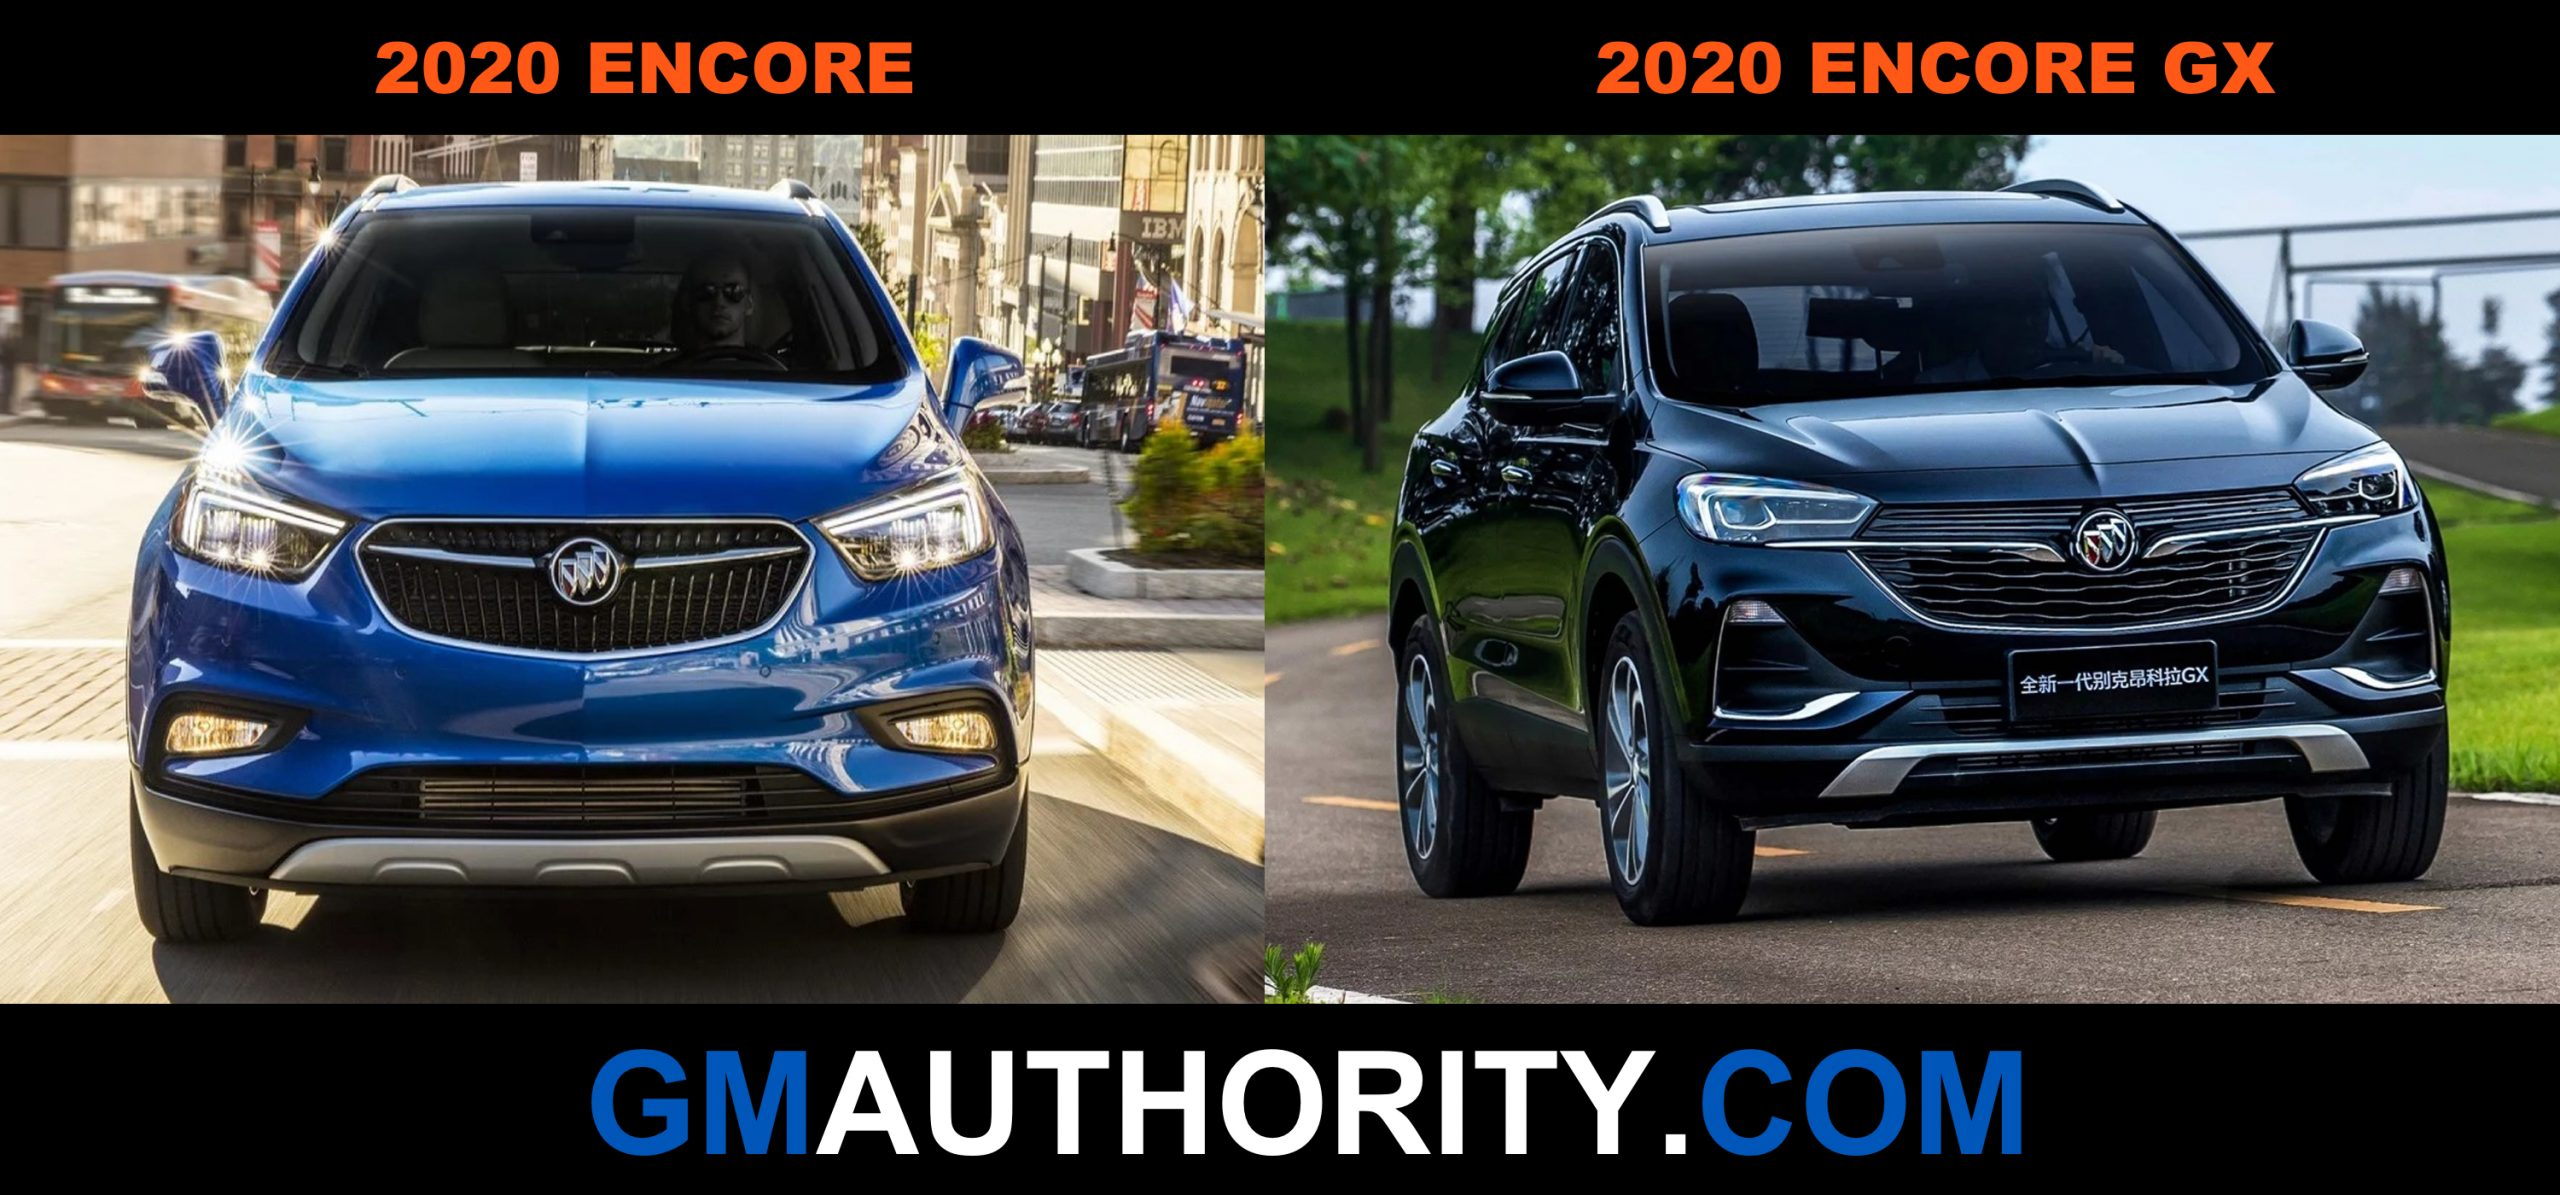 Buick Encore Vs. Buick Encore Gx: Visual Comparison | Gm 2021 Buick Encore Oil Capacity, Owner's Manual, Color Options